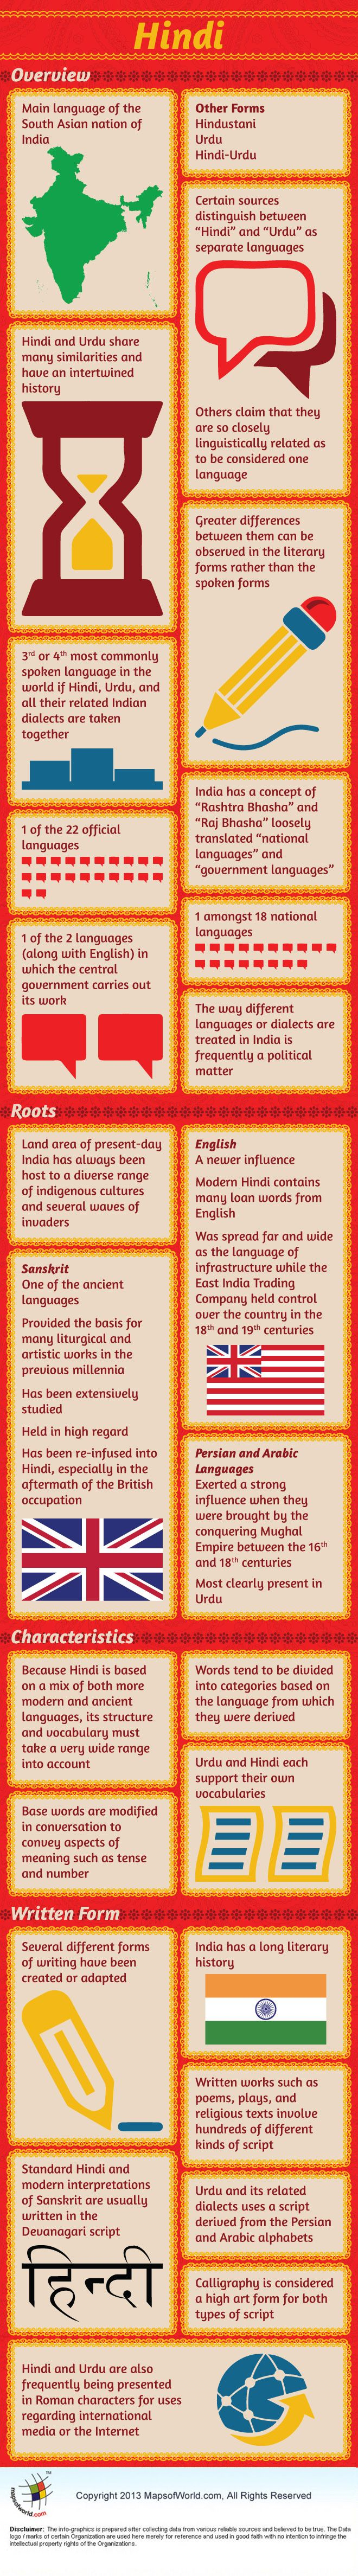 Educational infographic : The main language of #India Hindi is also known as hindi language. Check out th